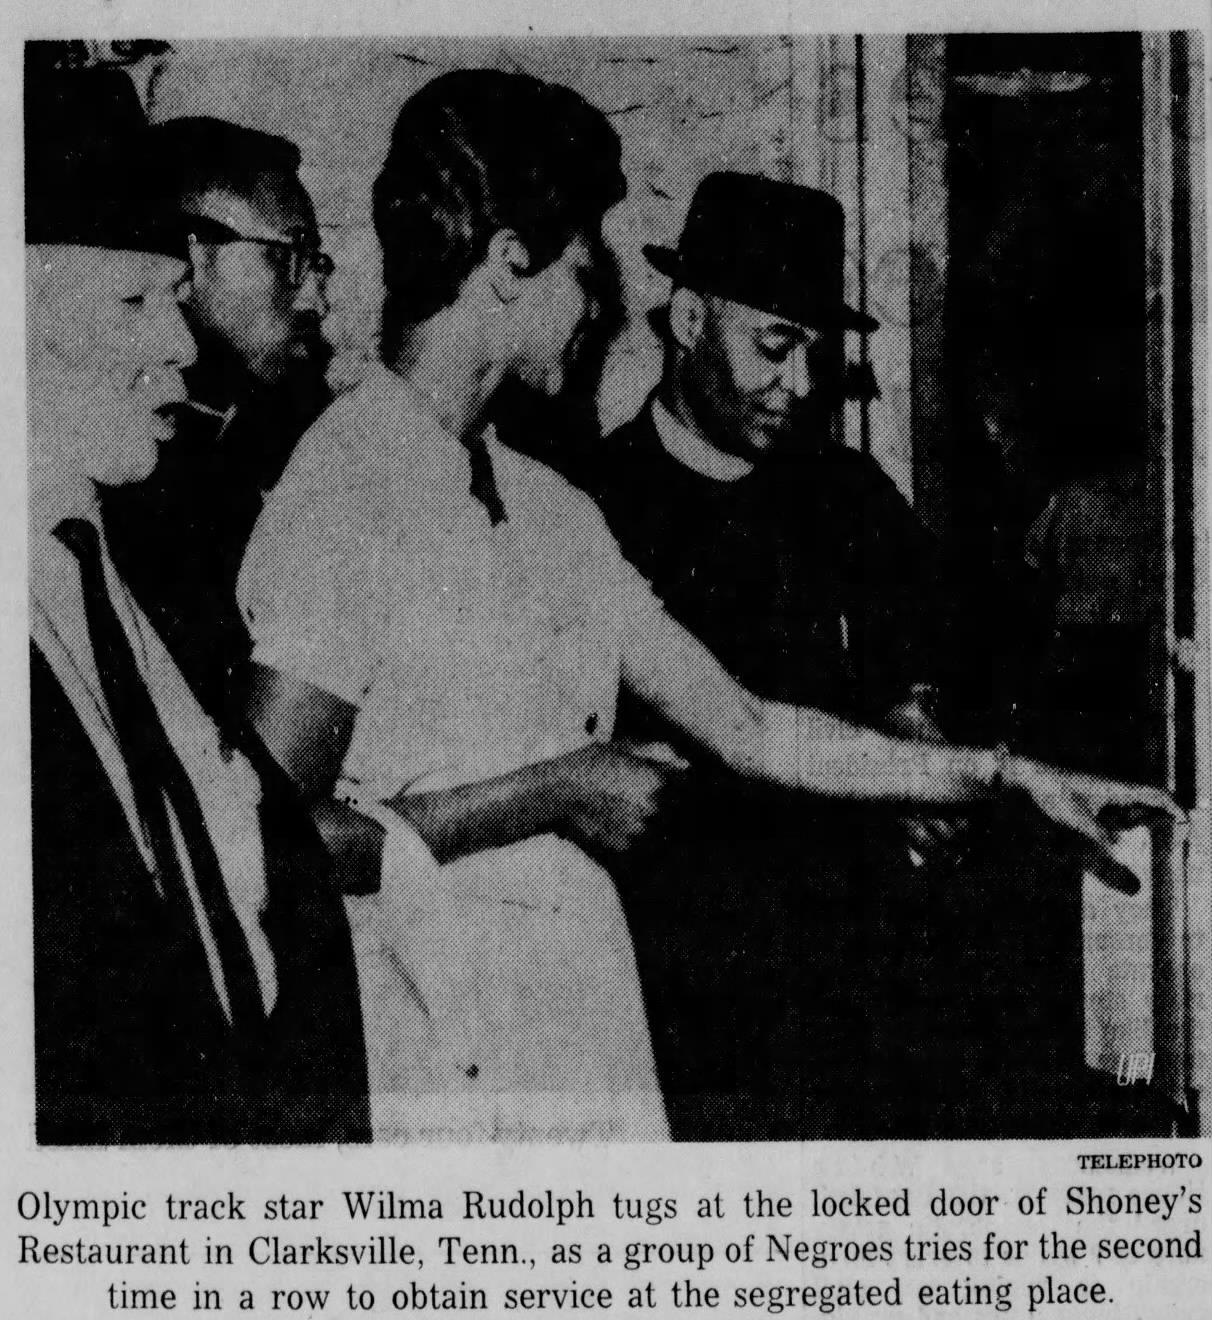 Wilma Rudolph and members of the Citizens Committee try to open the restaurant's locked doors on the second night of their demonstration against segregation in Clarksville.